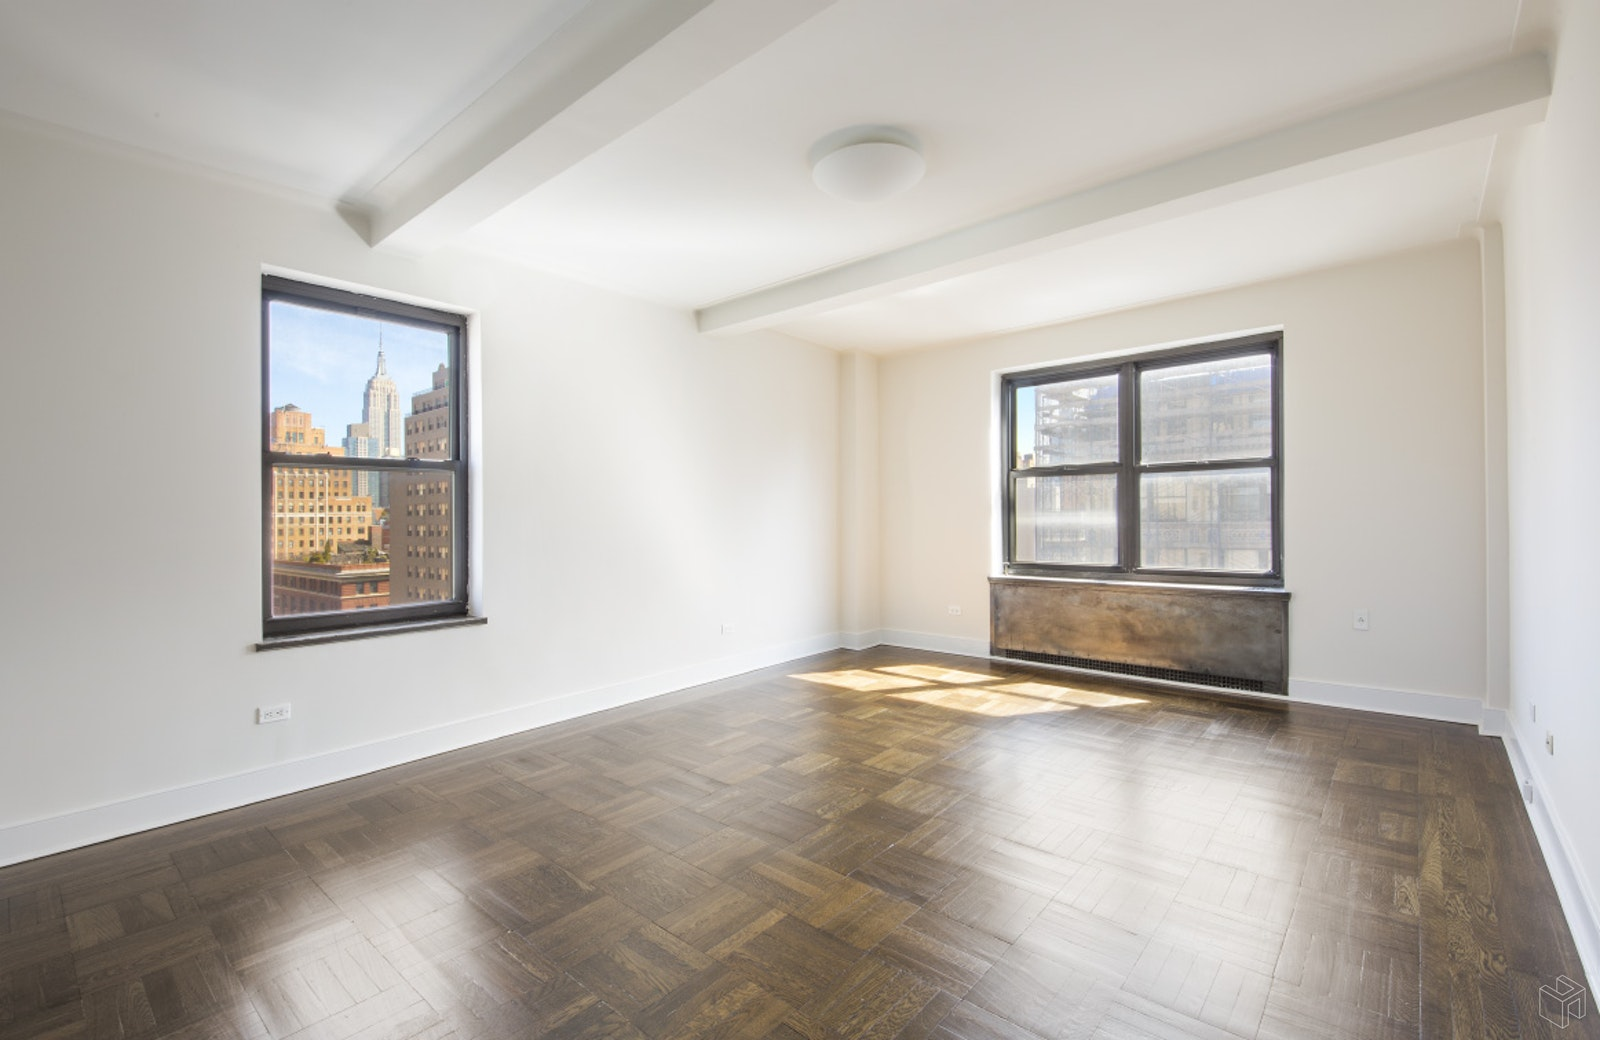 56 Seventh Avenue 10h, West Village, NYC, 10011, Price Not Disclosed, Rented Property, Halstead Real Estate, Photo 1